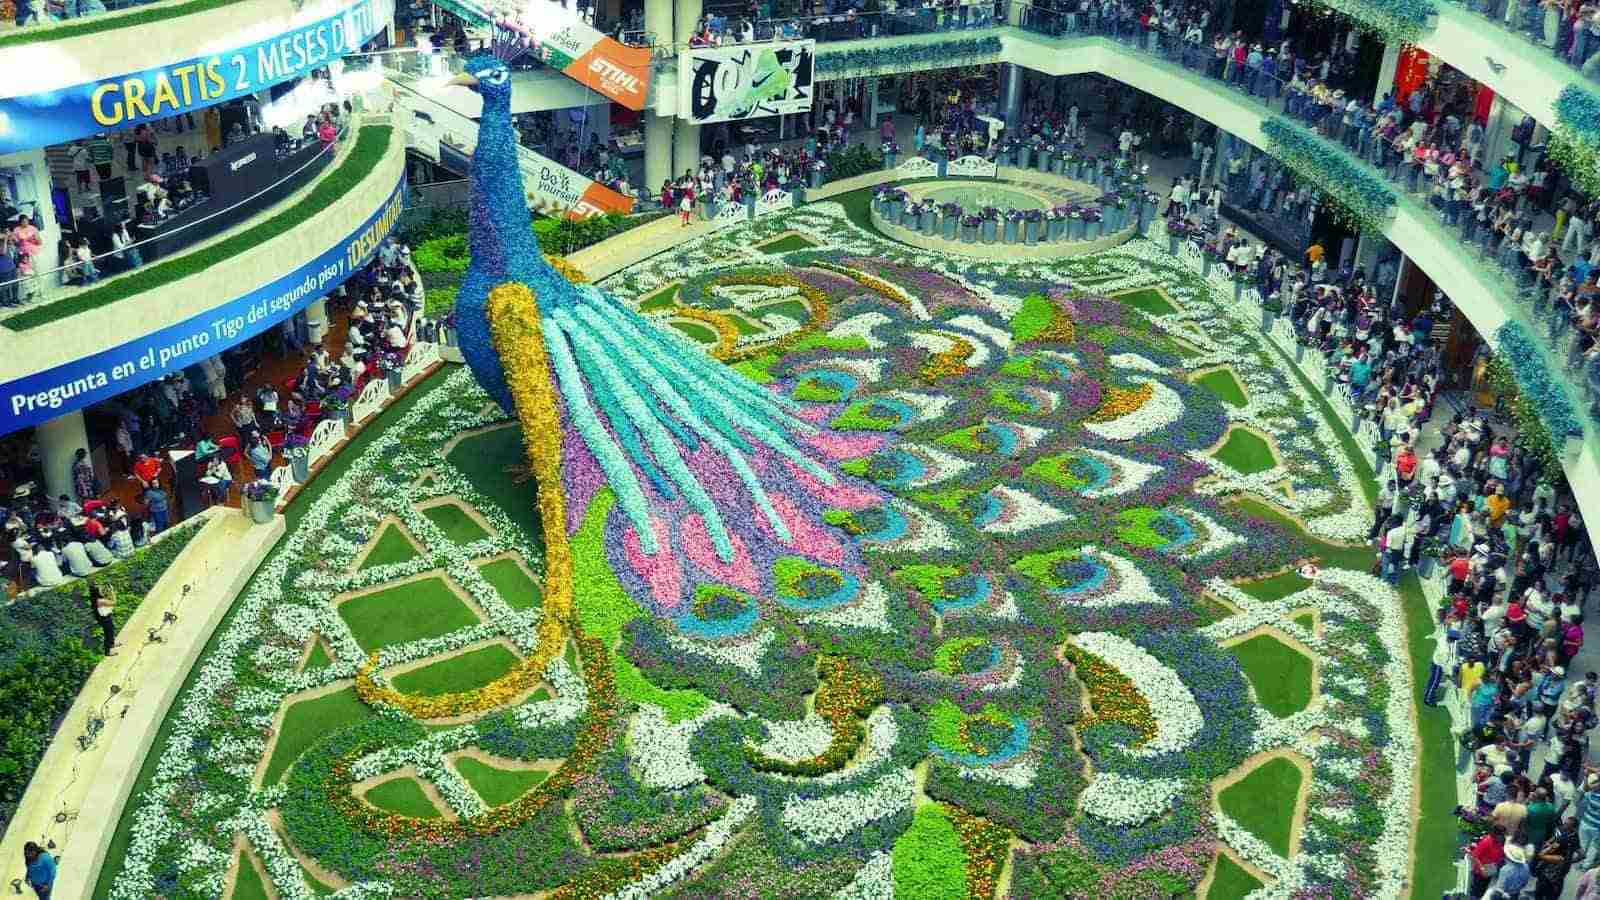 The Medellin Flower Festival is an incredible celebration of Colombian flowers and culture